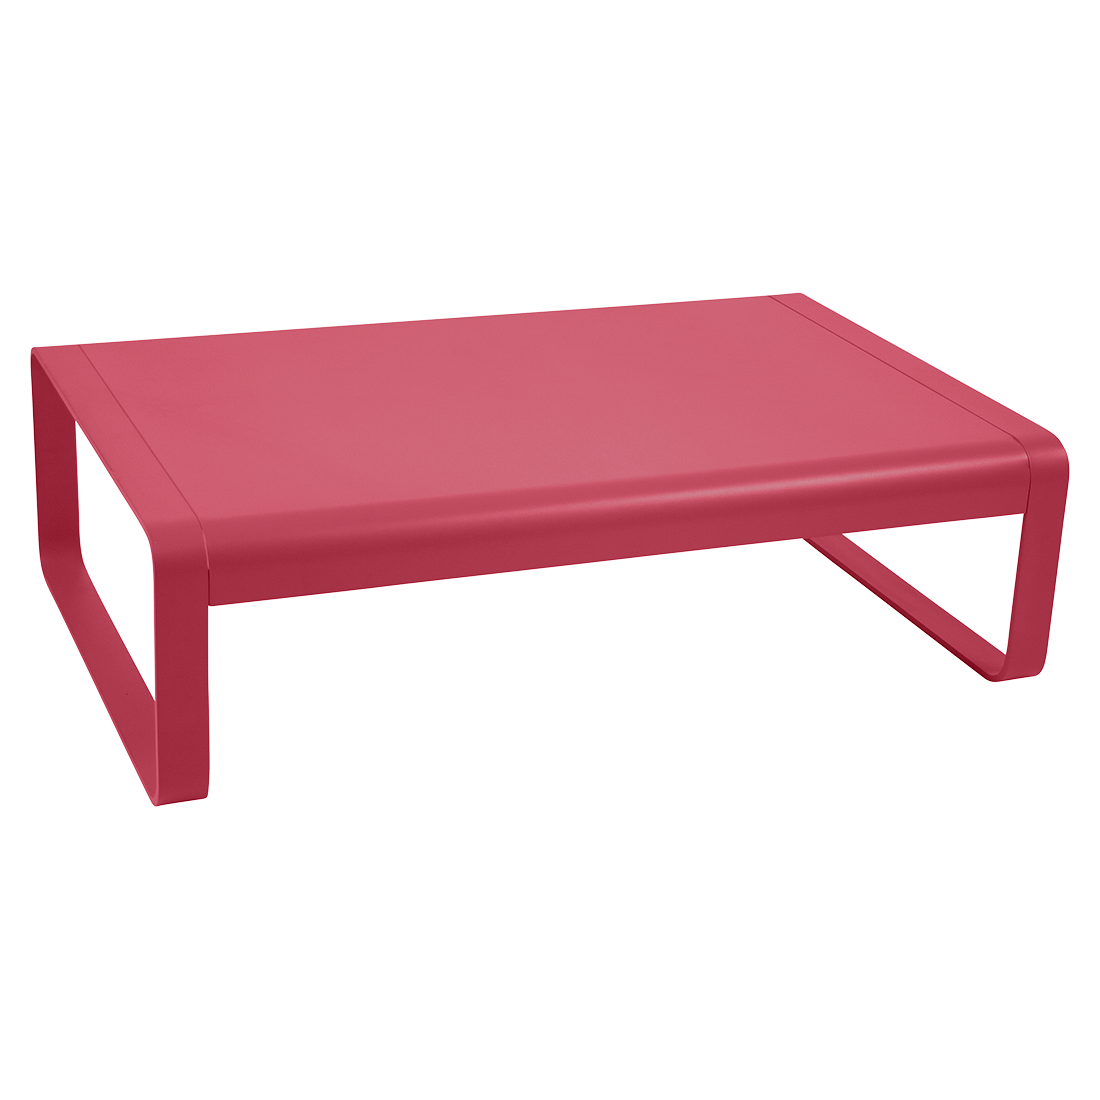 table basse metal, table basse de jardin, table basse rose